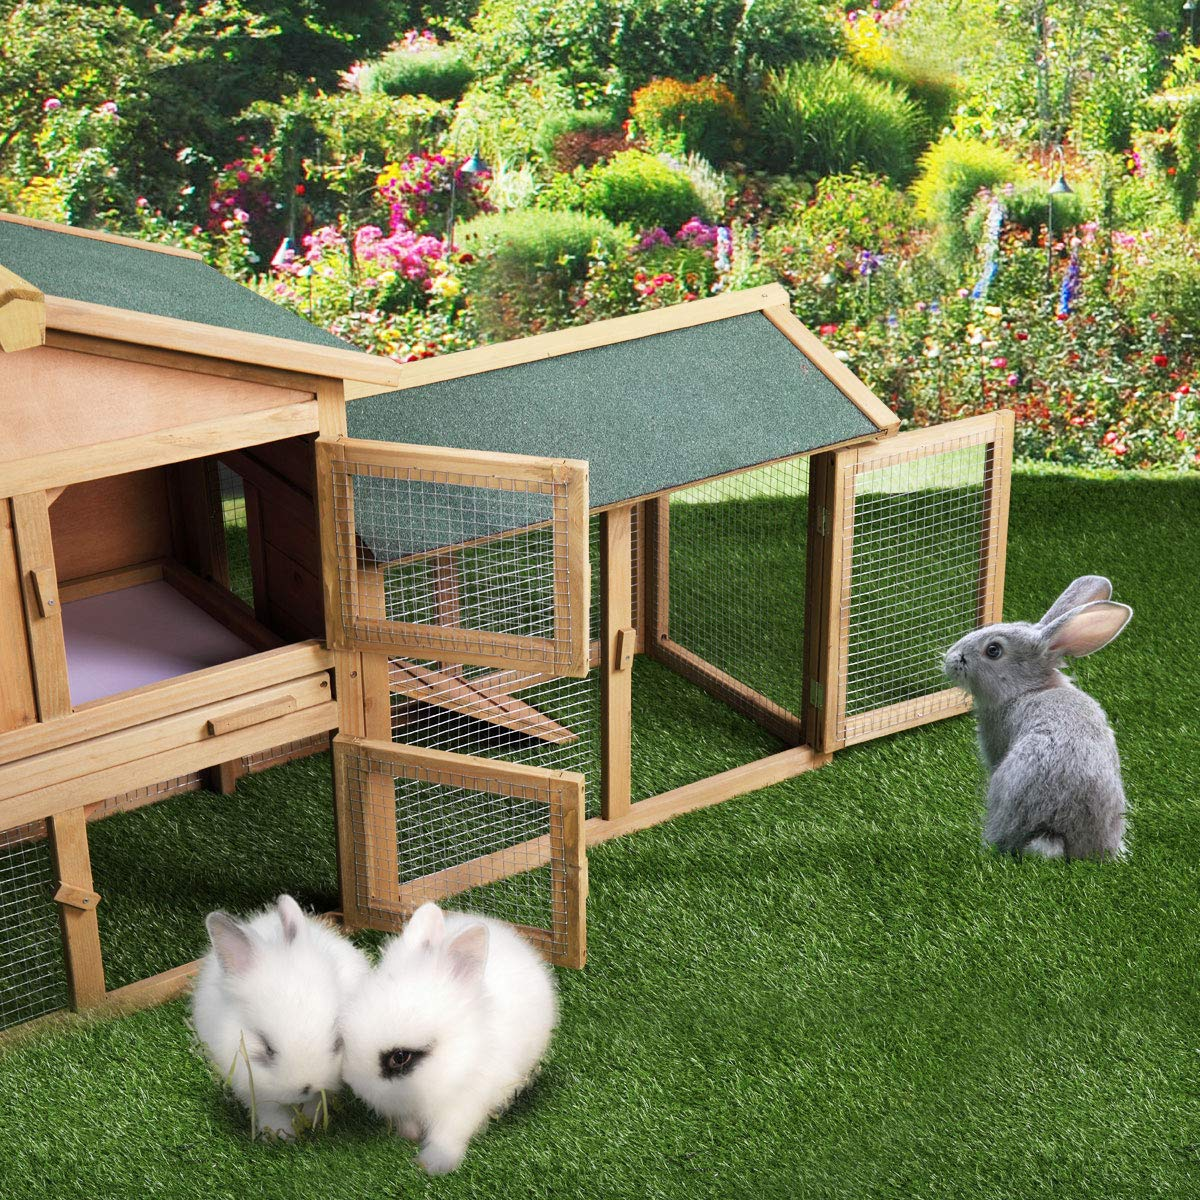 P PURLOVE Wood Bunny Hutch 54'' Large 2 Story Outdoor Bunny House with Removable Tray & Ramp, Backyard Garden Rabbit Cage/Guinea Pig House/Chicken Coop Nesting Box for Small Animals by P PURLOVE (Image #3)